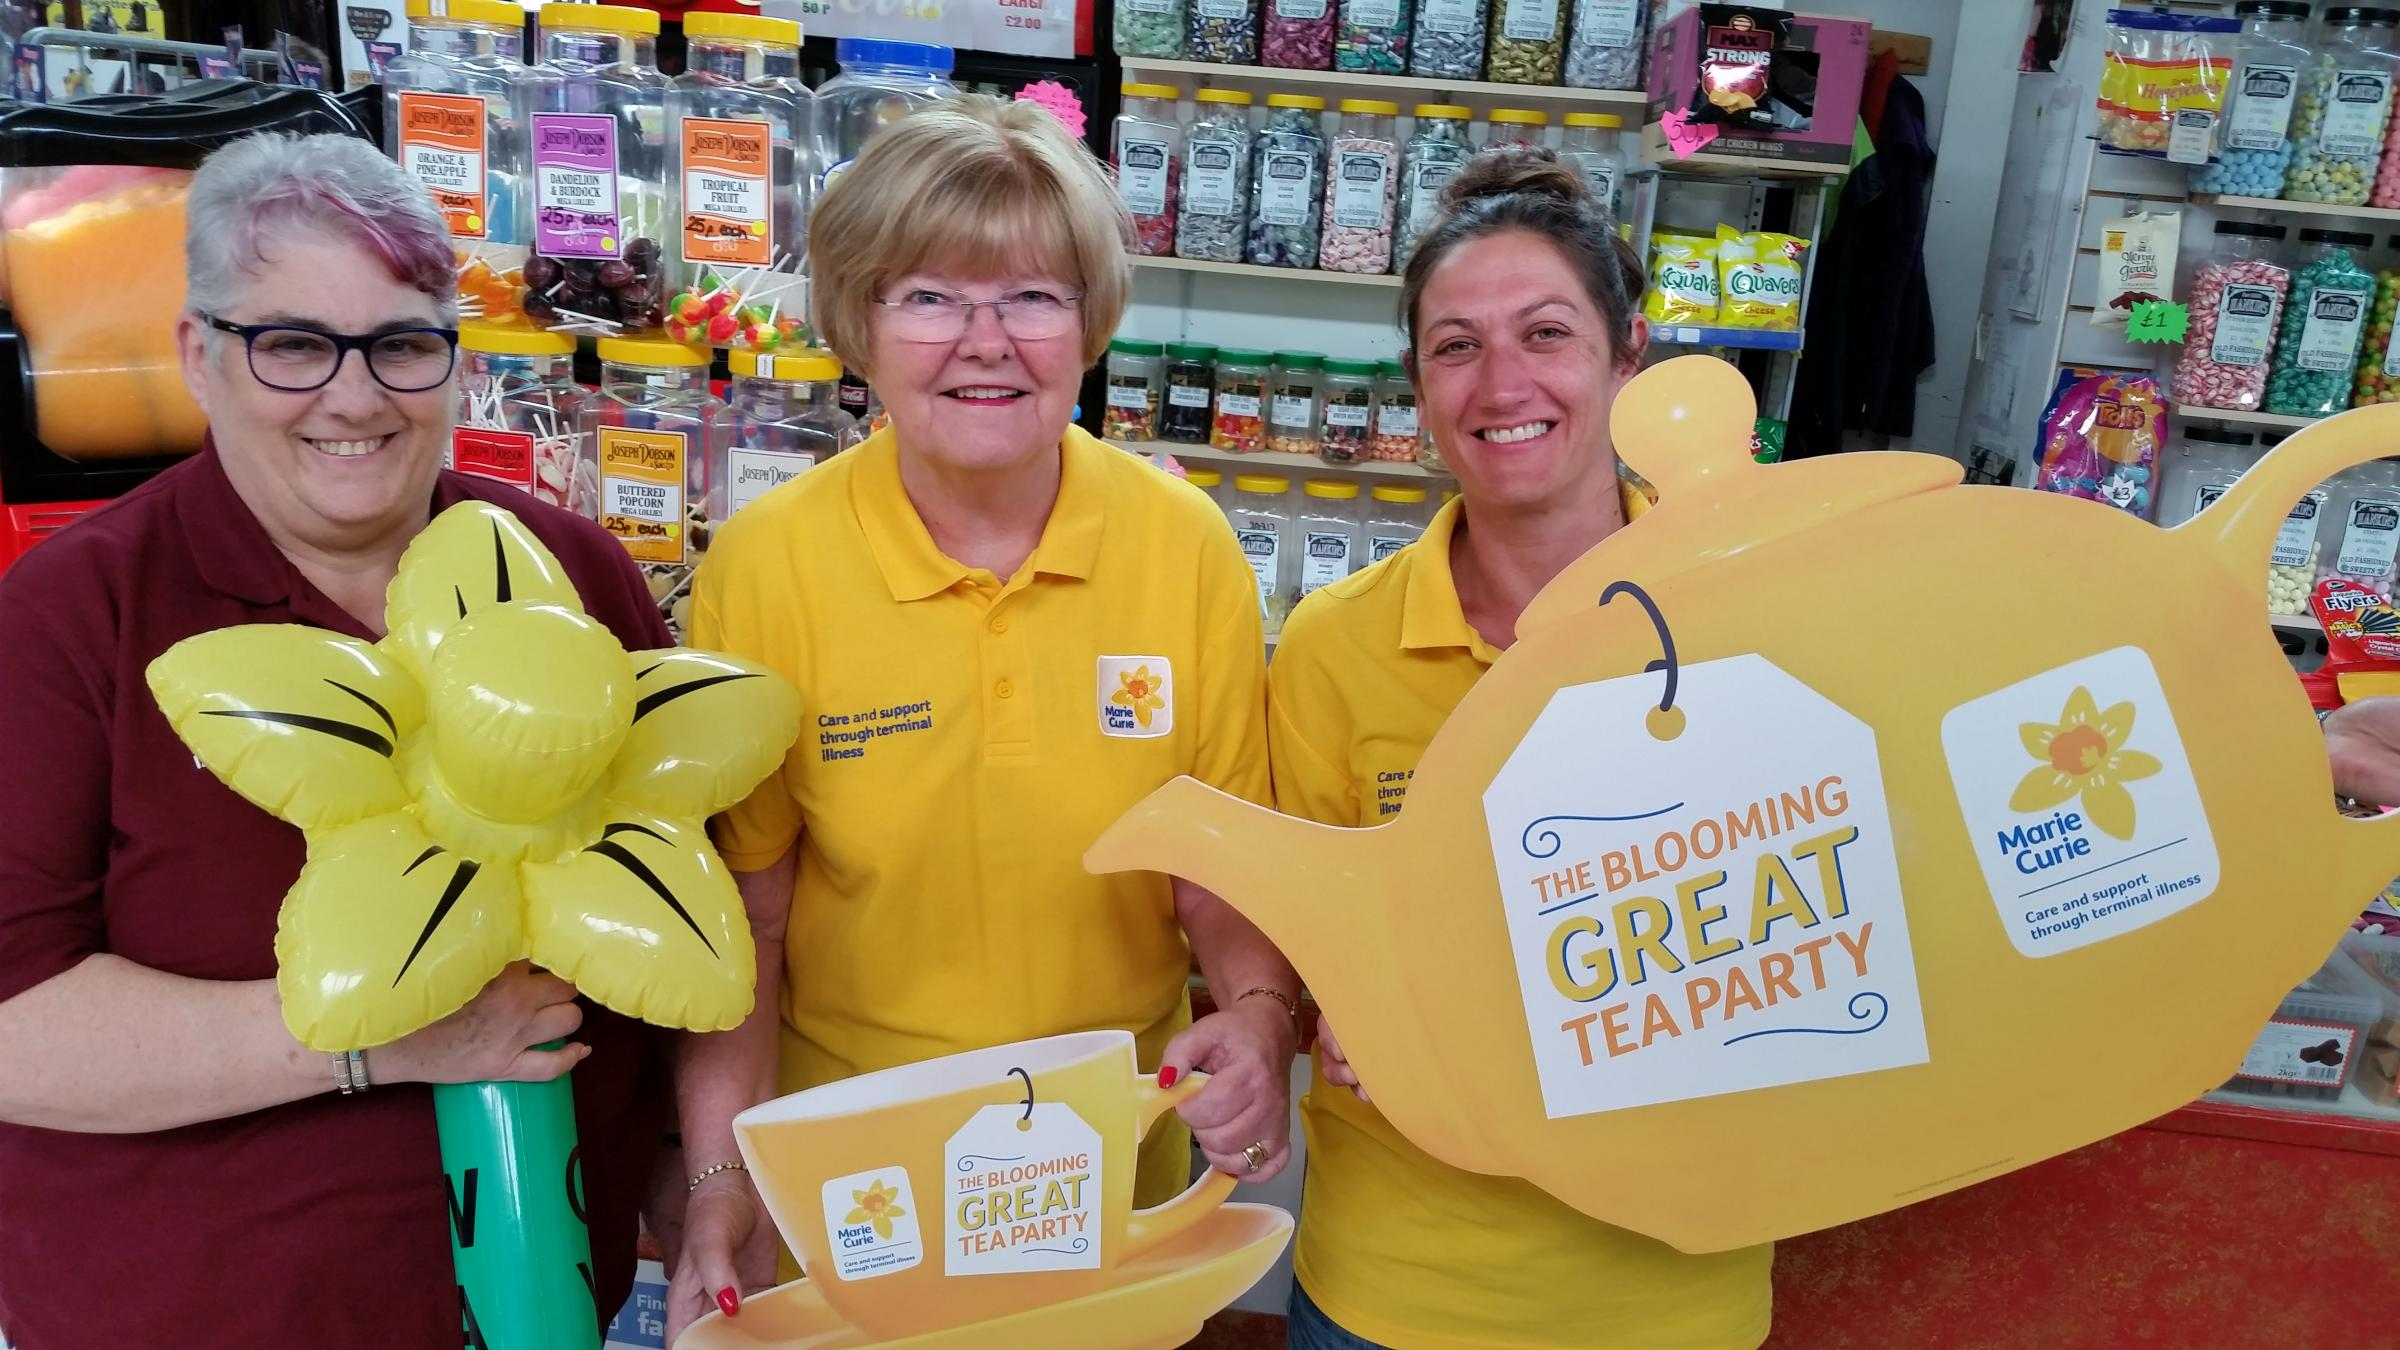 Chris Grice, Lorna Cannell and Debbie Hankin invite people to throw a tea party and raise funds for Marie Curie